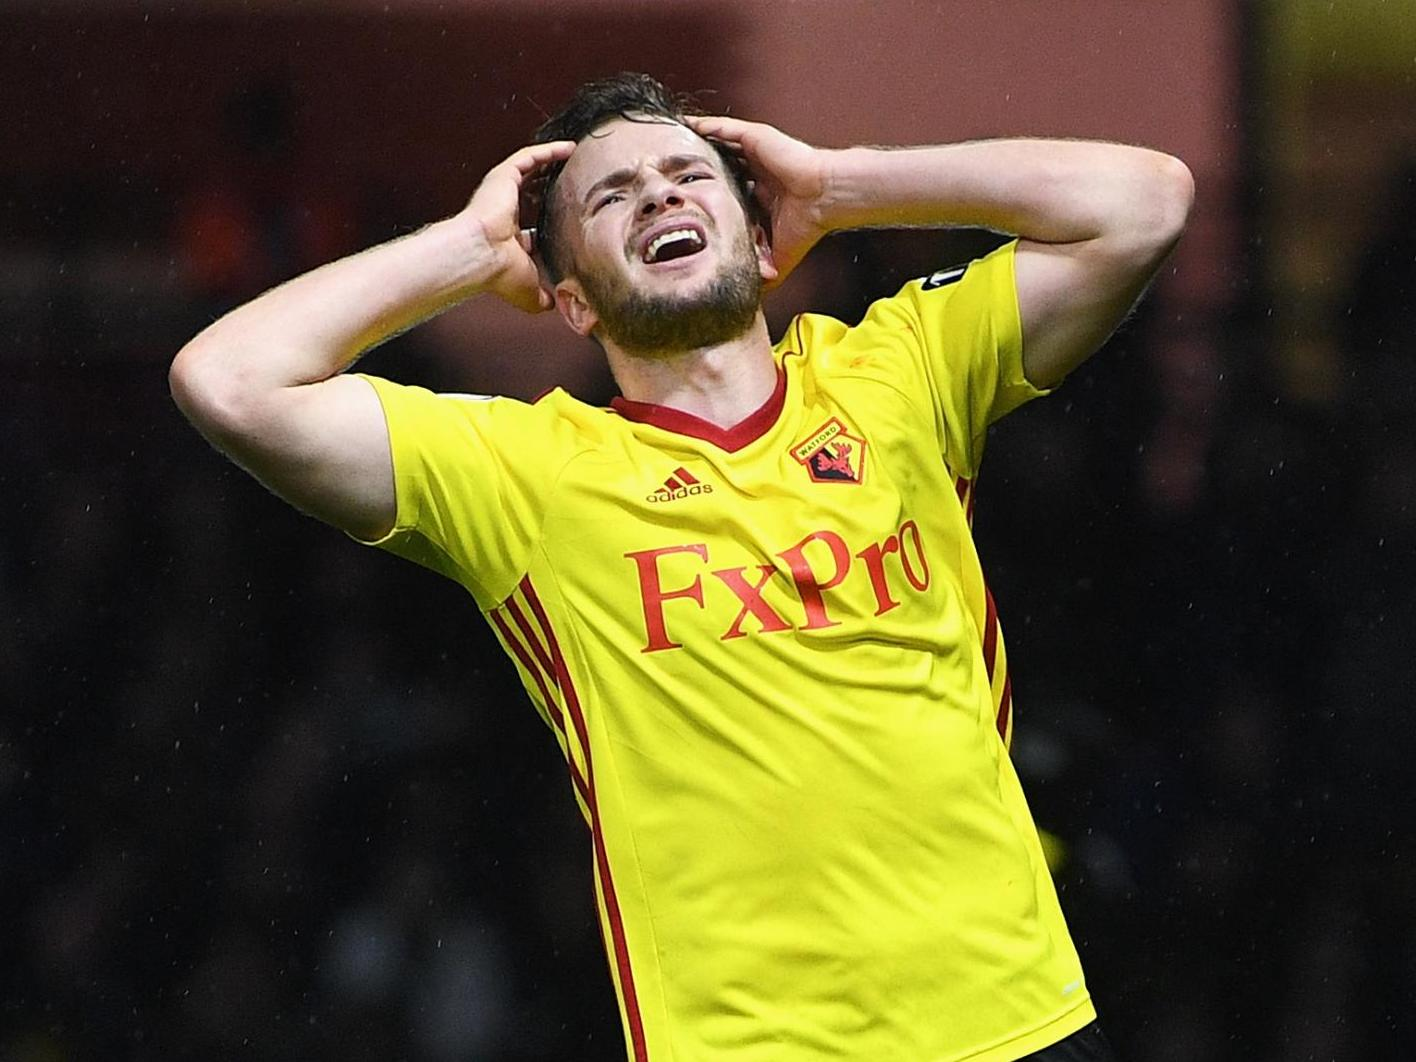 Watford news: Tom Cleverley to miss start of Premier League season after Achilles operation